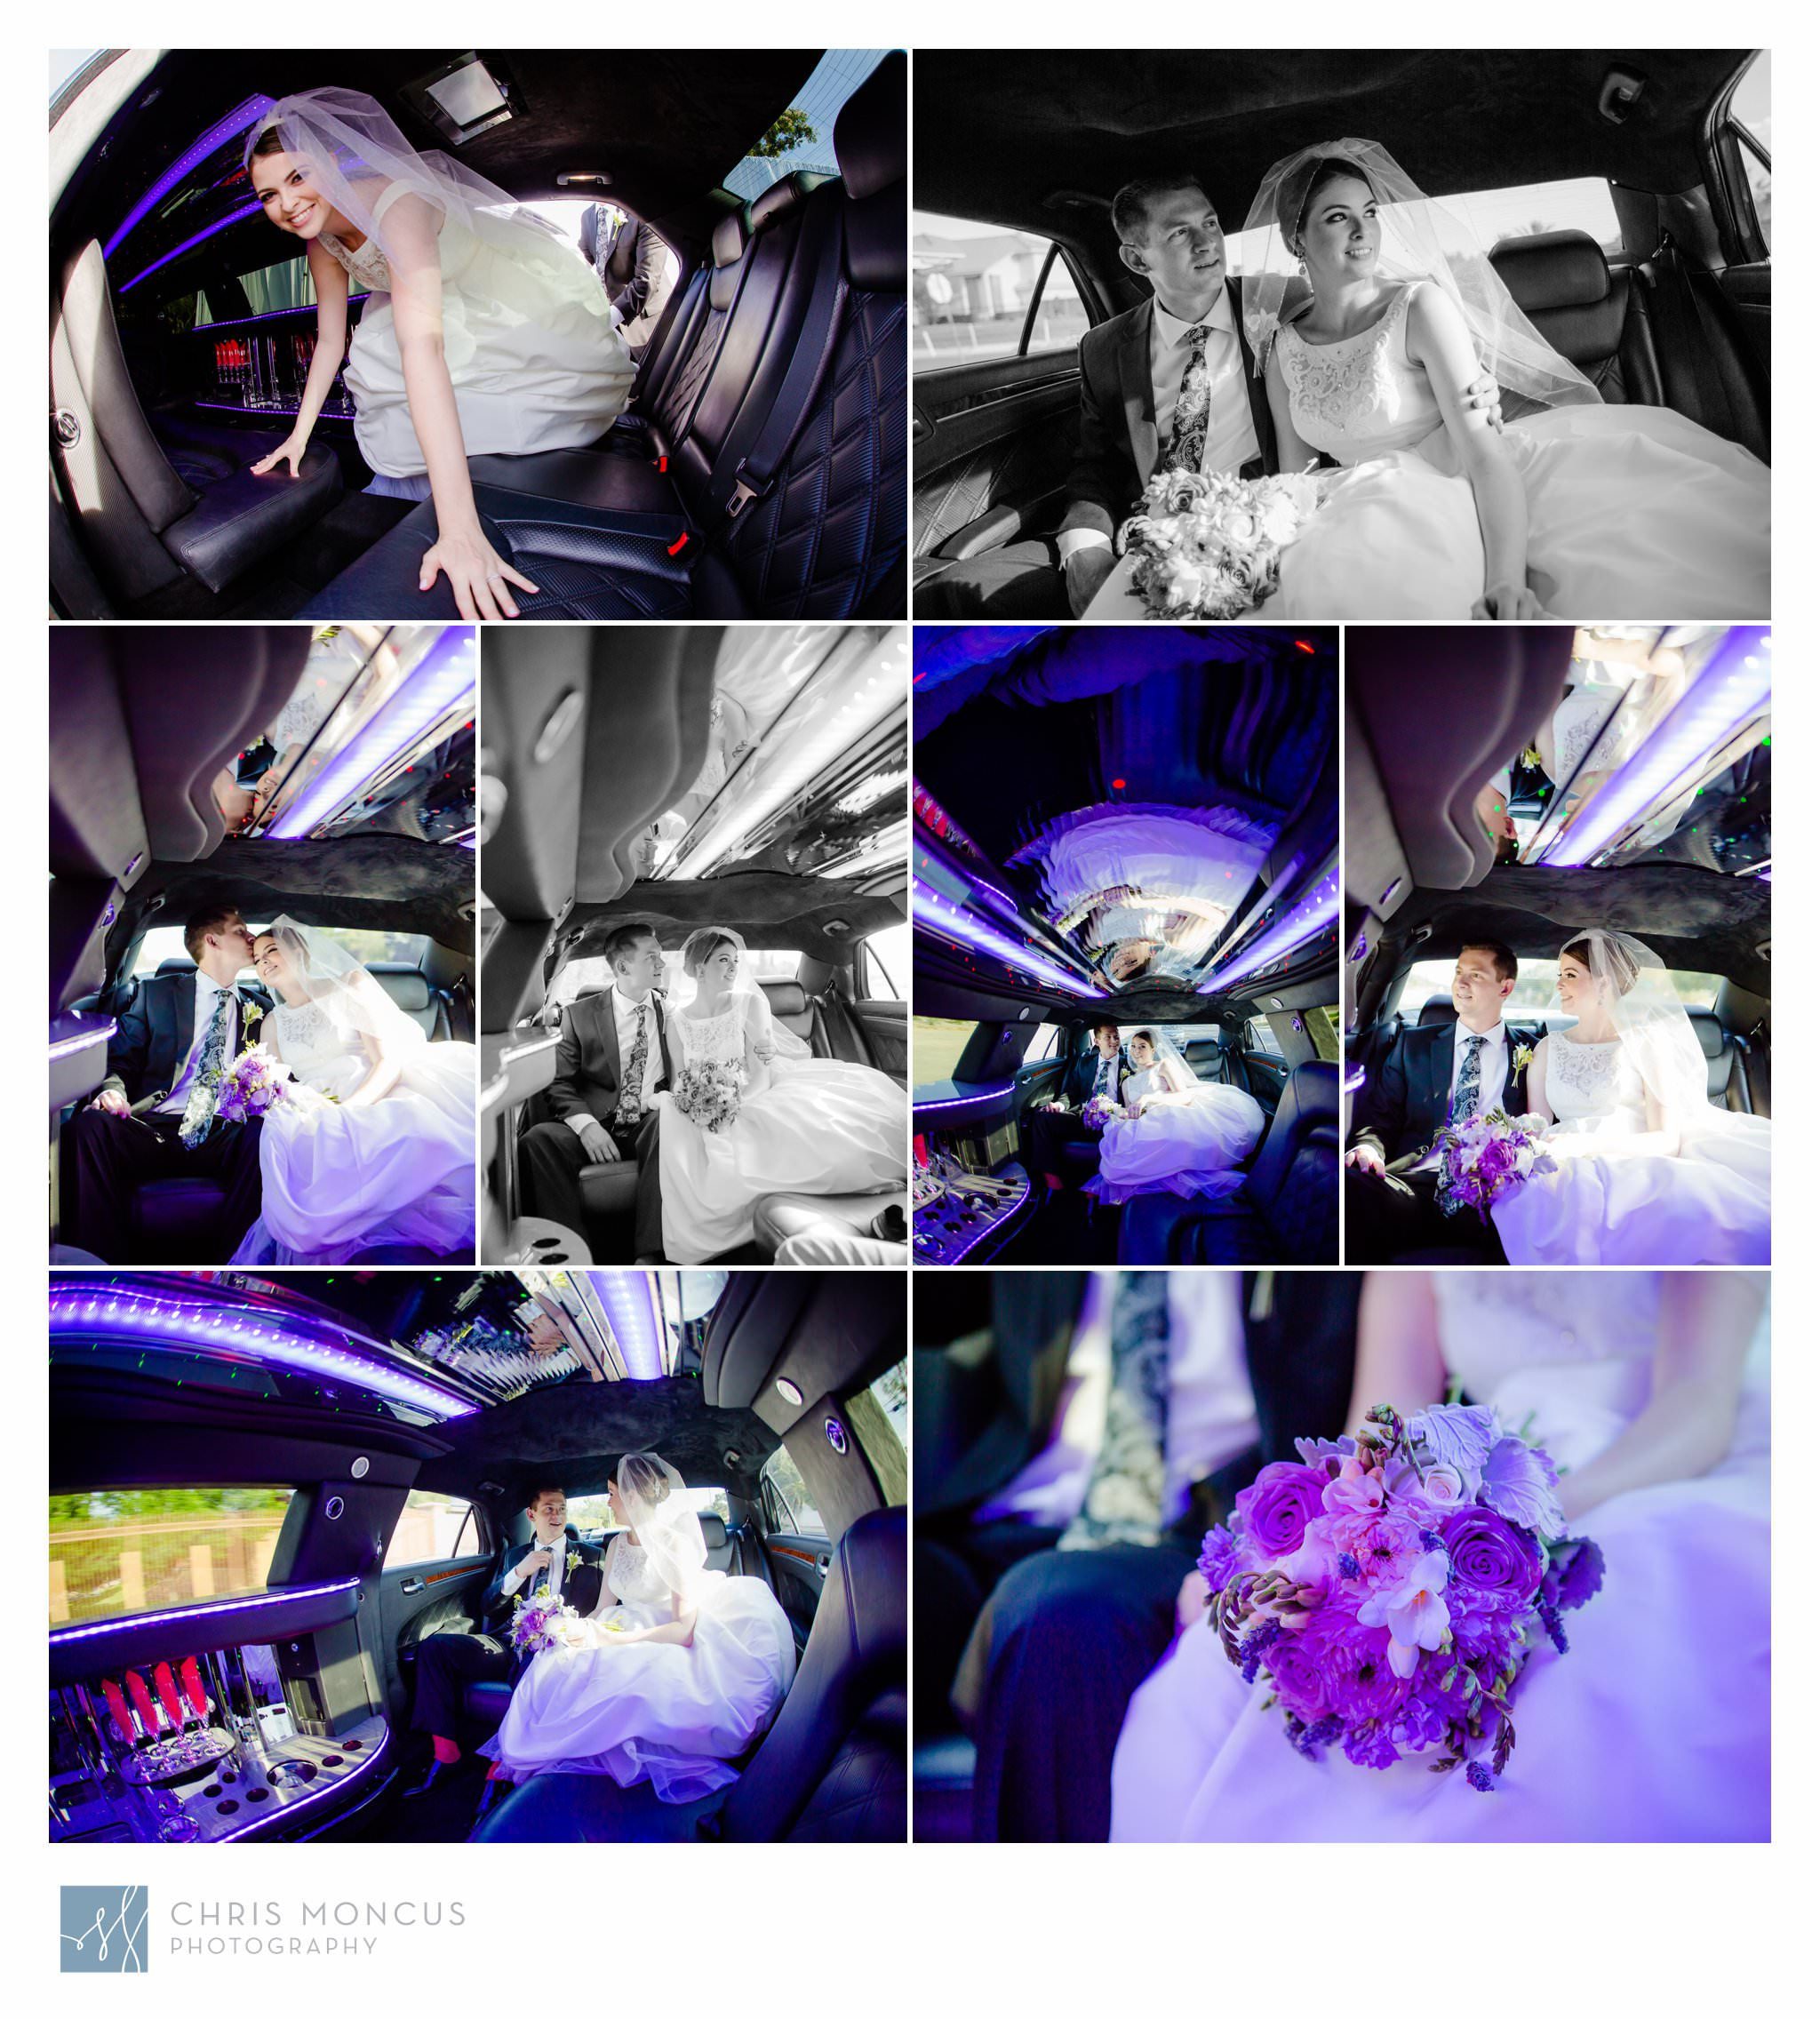 Bride and Groom in Limo Las Vegas Wedding Transportation